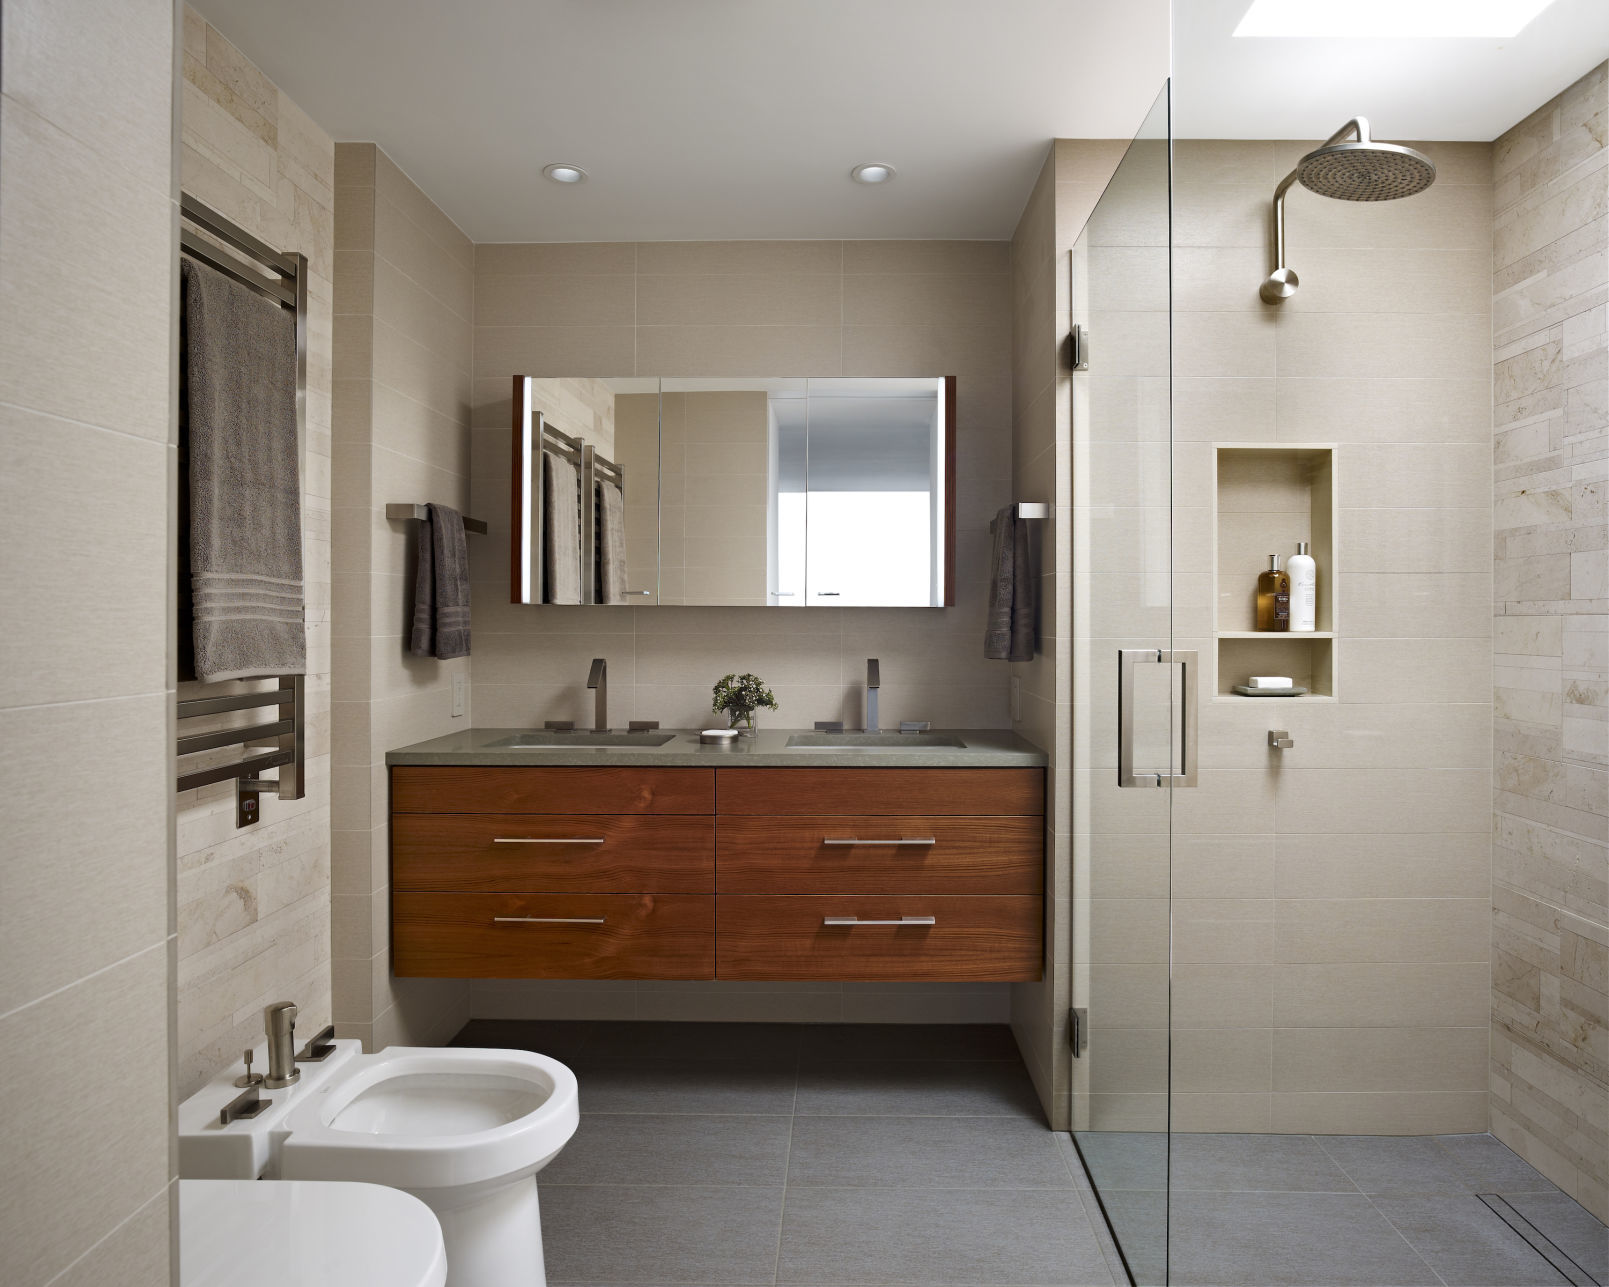 Modern Bathroom Reset Your Routine With A Functional Modern Bathroom Home